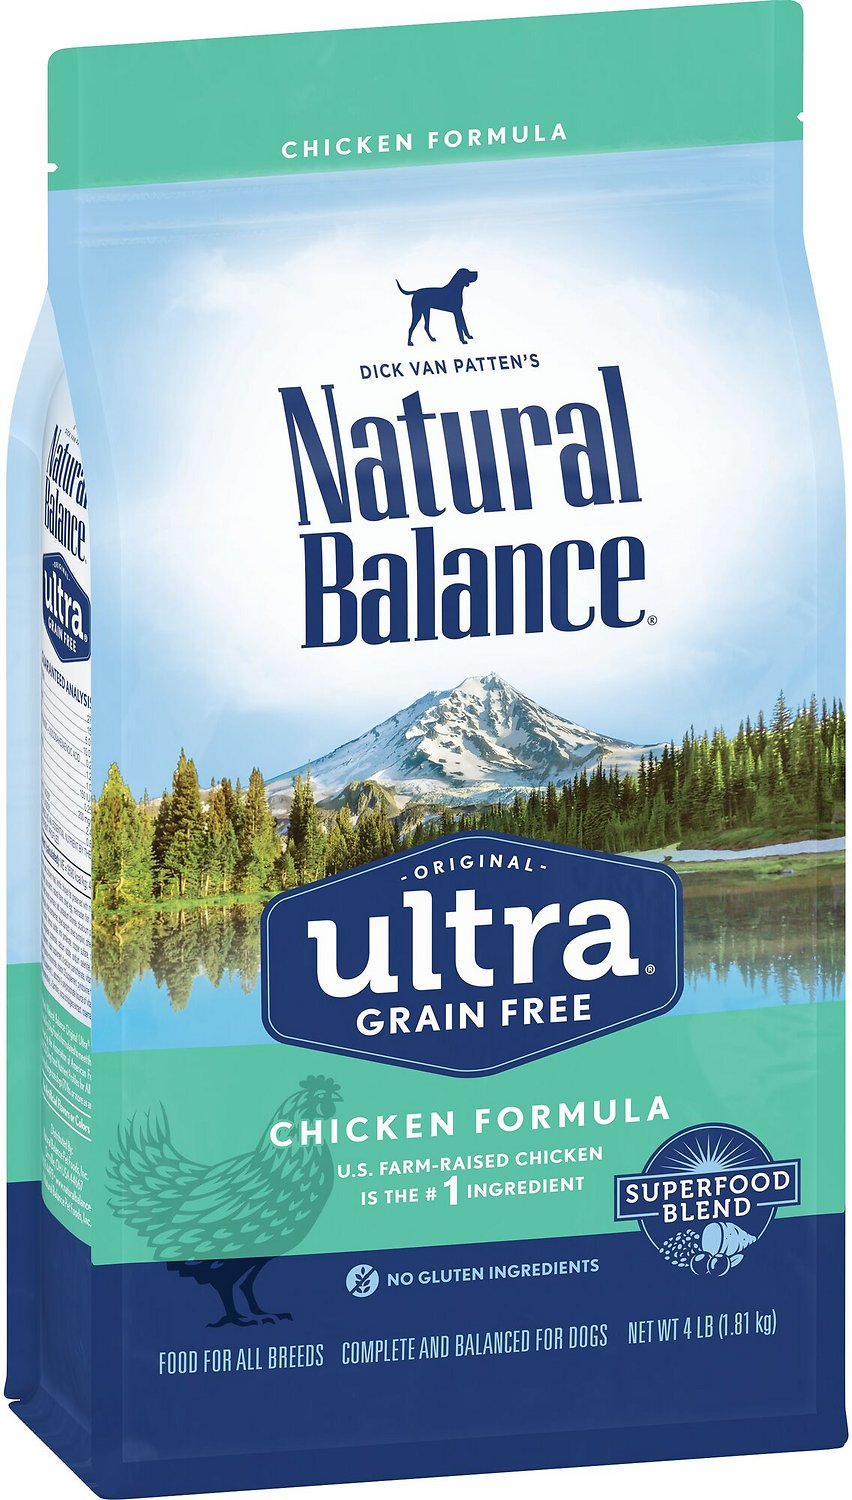 Natural Balance Original Ultra Grain-Free Chicken Formula Dry Dog Food, 4-lb